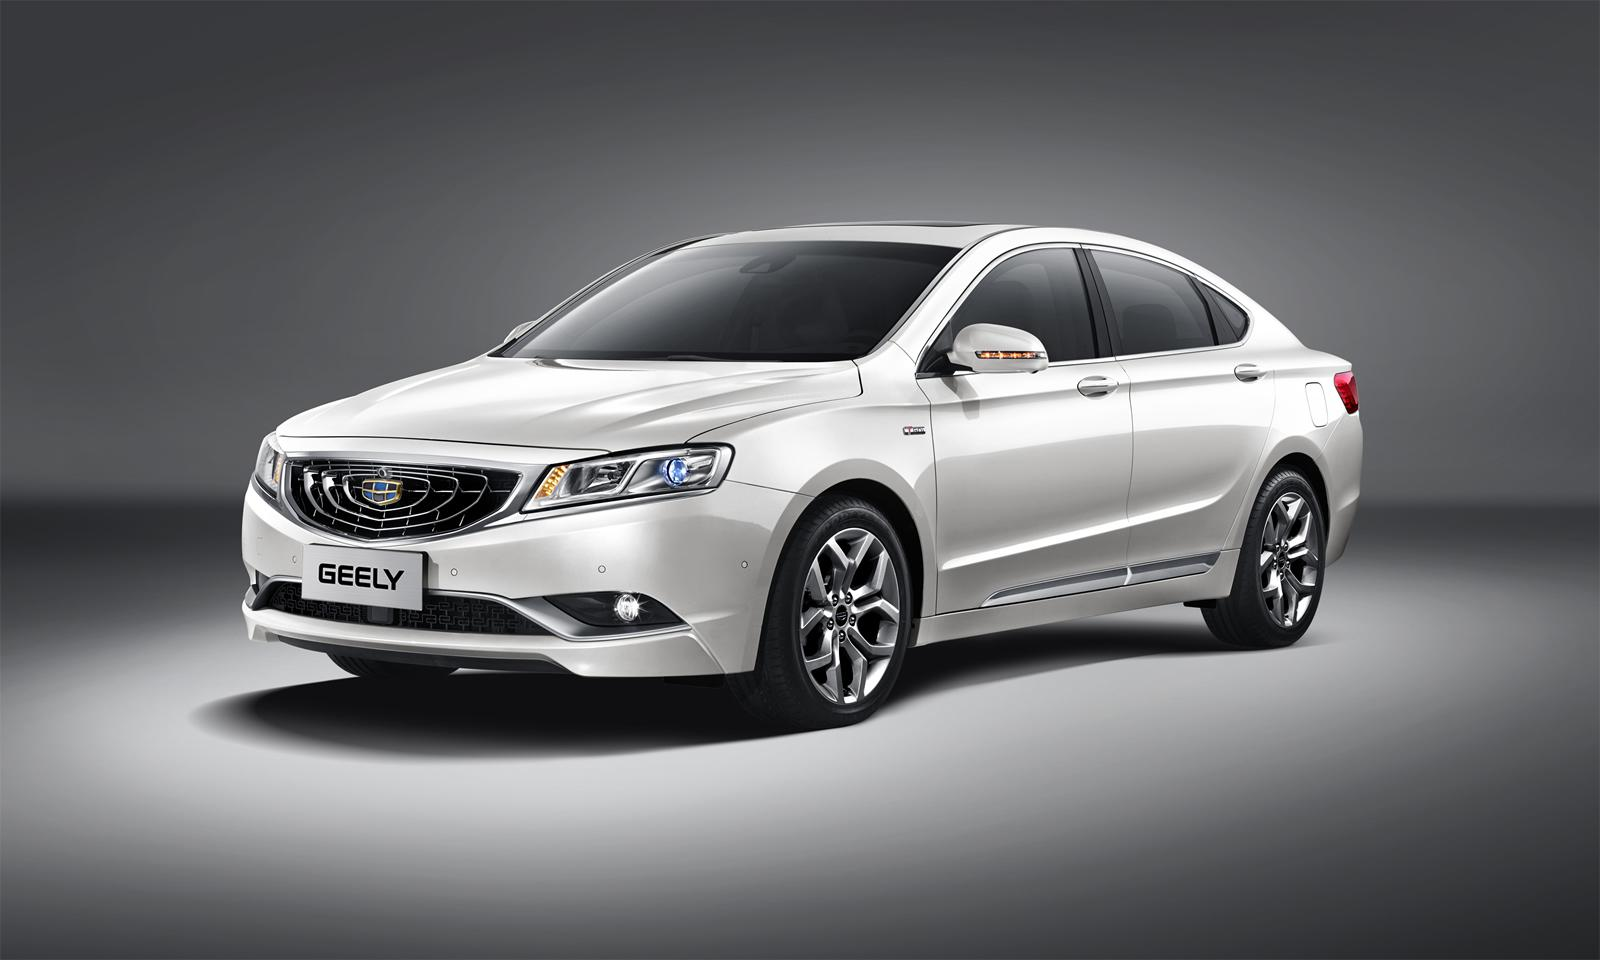 4 Series Sedan >> Geely GC9 Is a Classy New Chinese Sedan - autoevolution